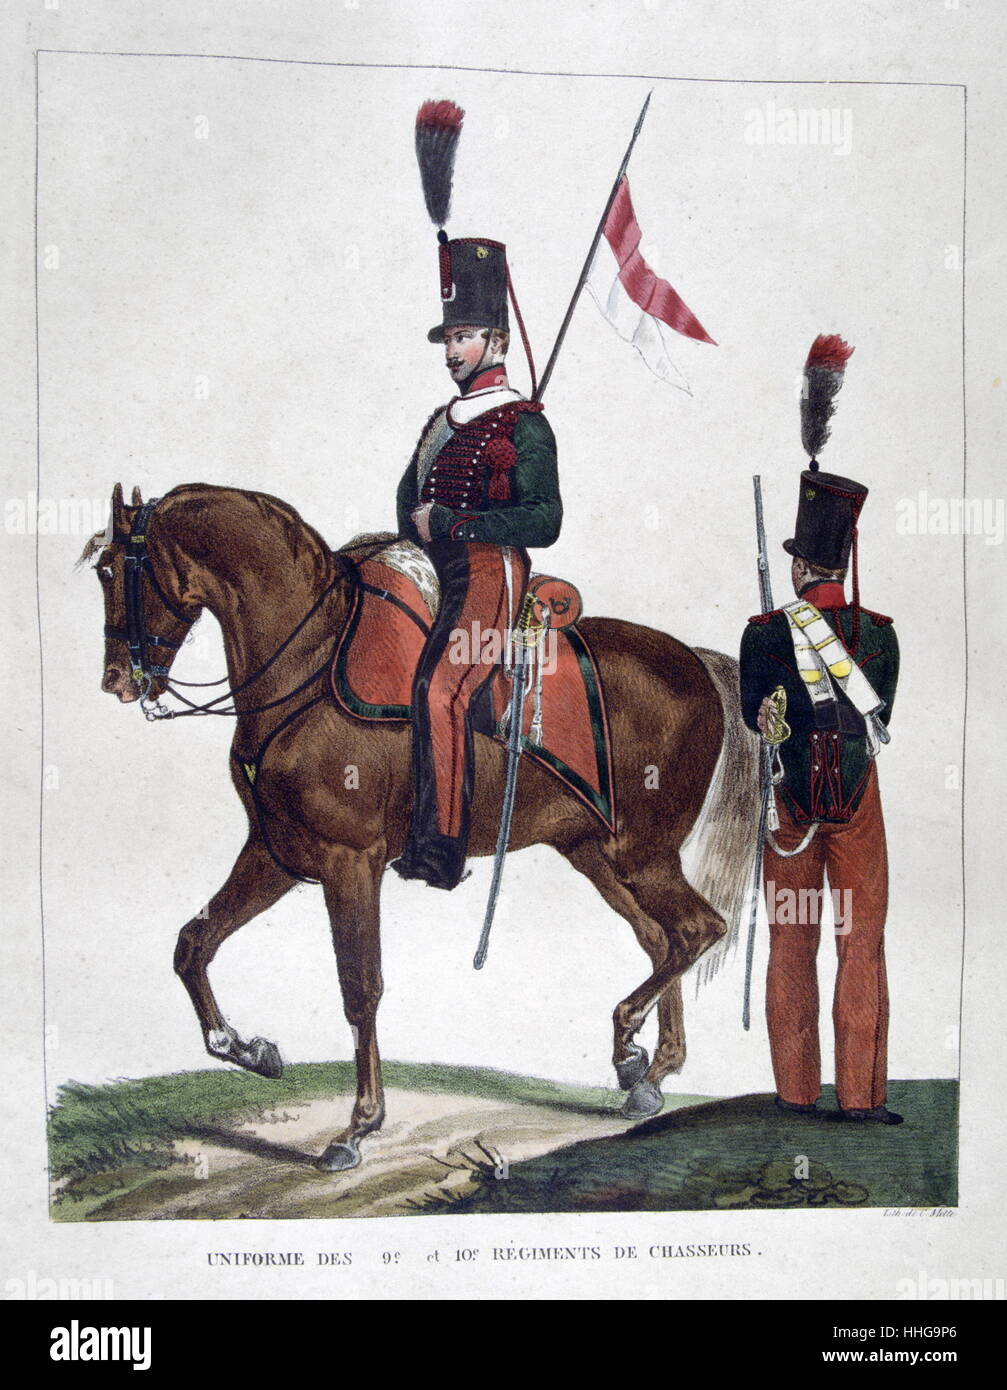 Uniformed cavalryman and soldier of the French Chasseurs Regiment, 1823 - Stock Image